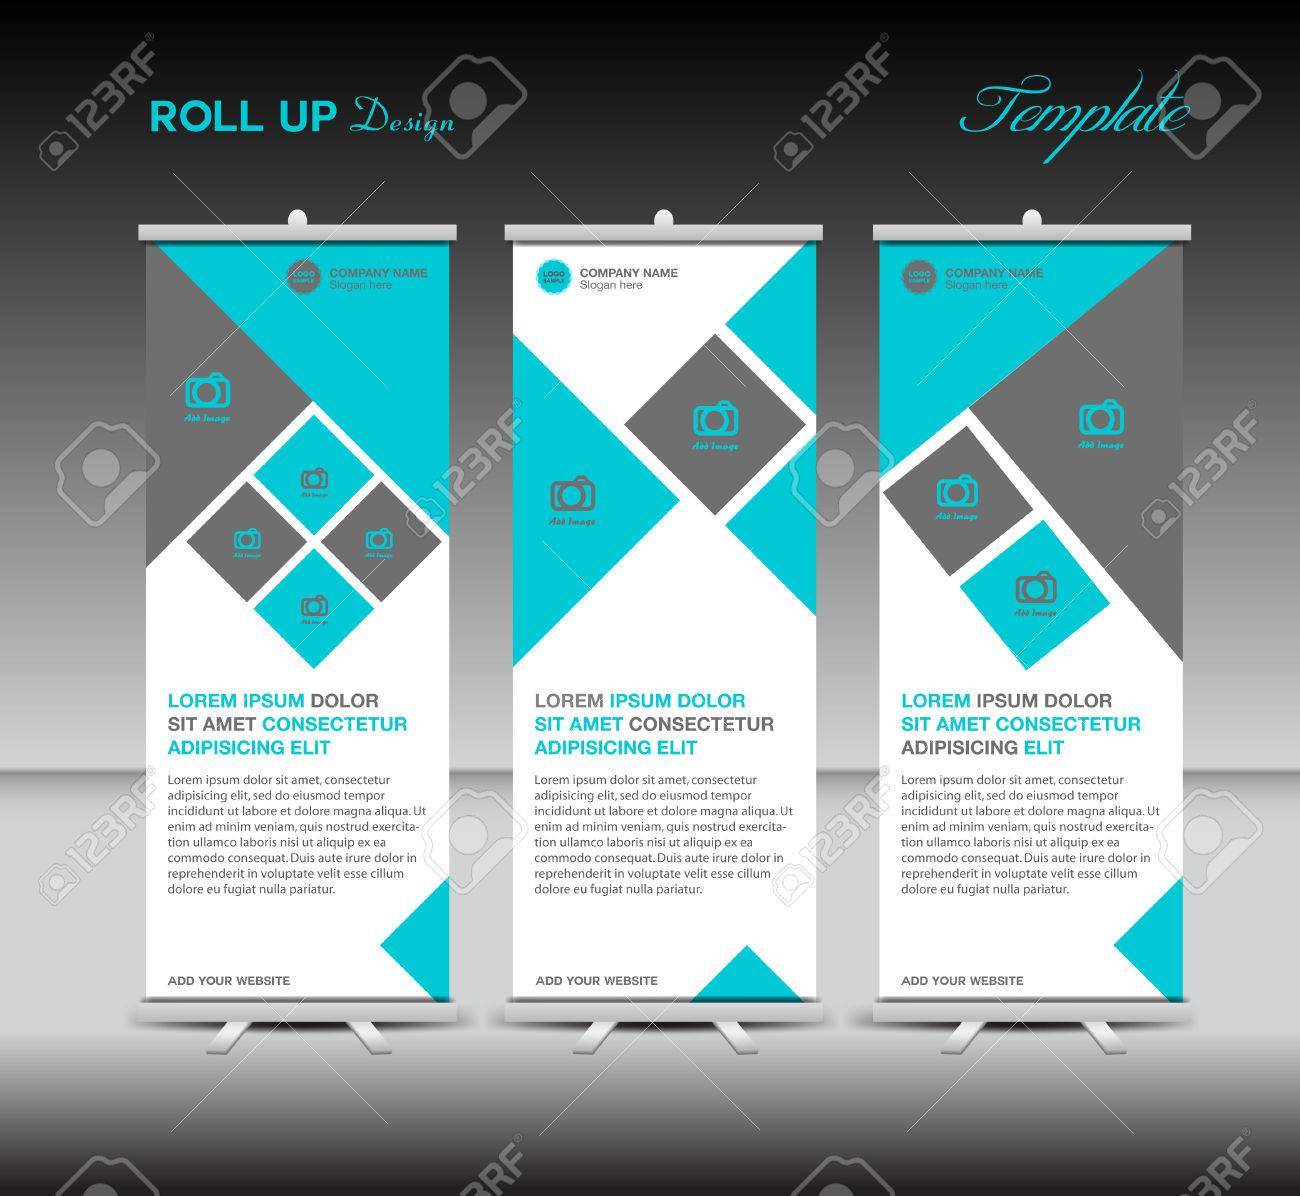 blue roll up template display advertisement layout design blue roll up template display advertisement layout design illustration stock vector 57839019